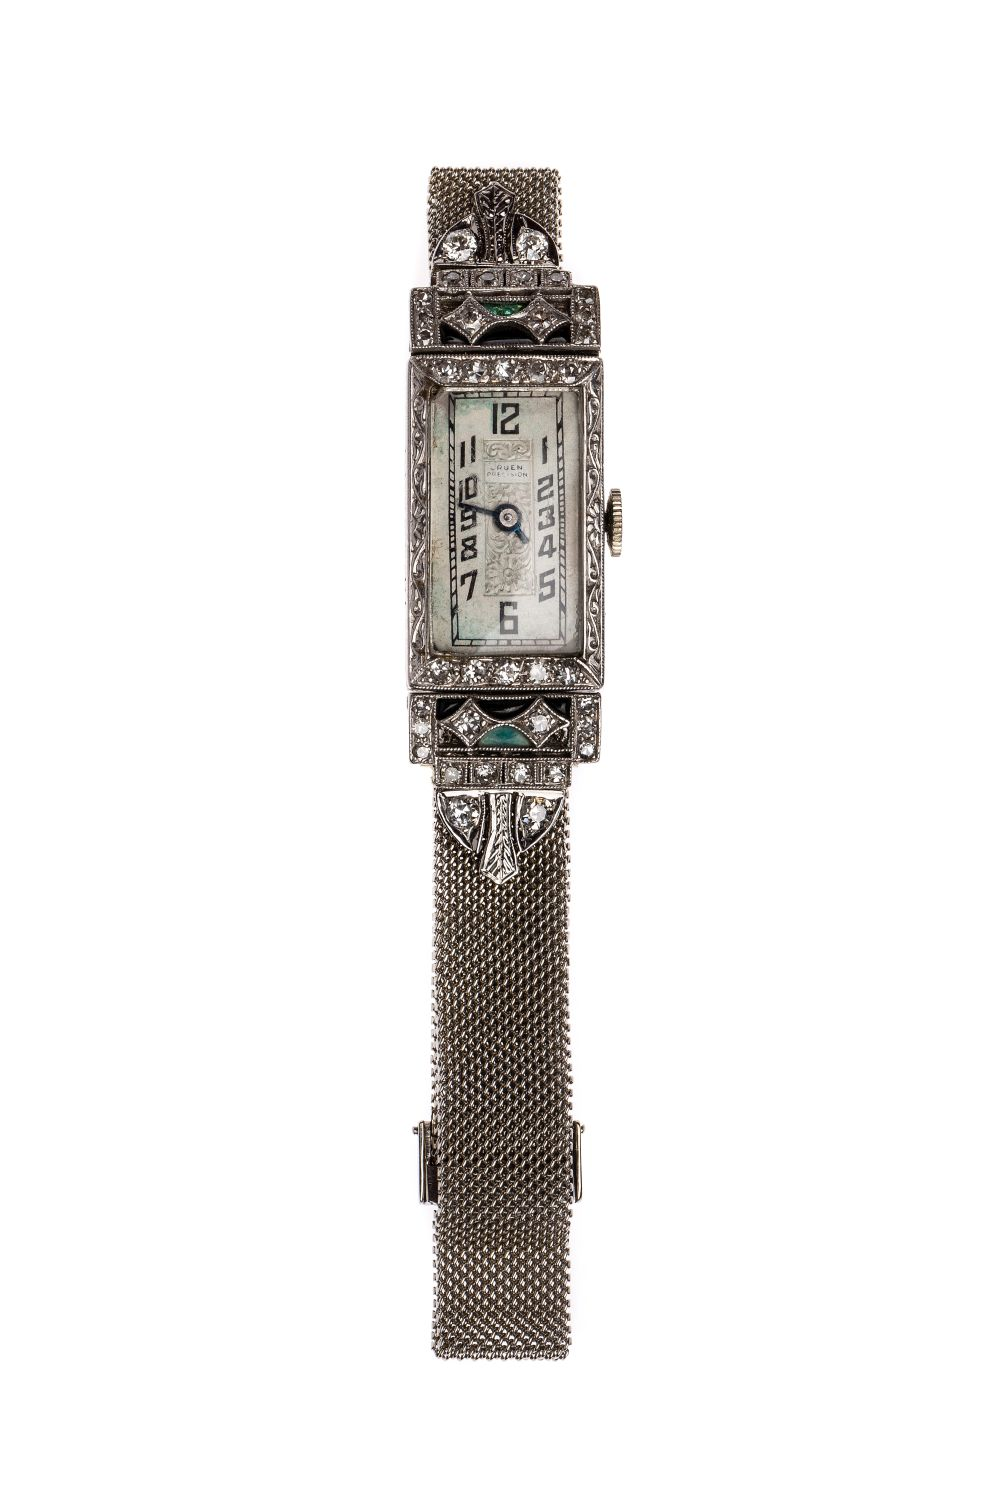 #158 Ladies watch | Damenuhr Image